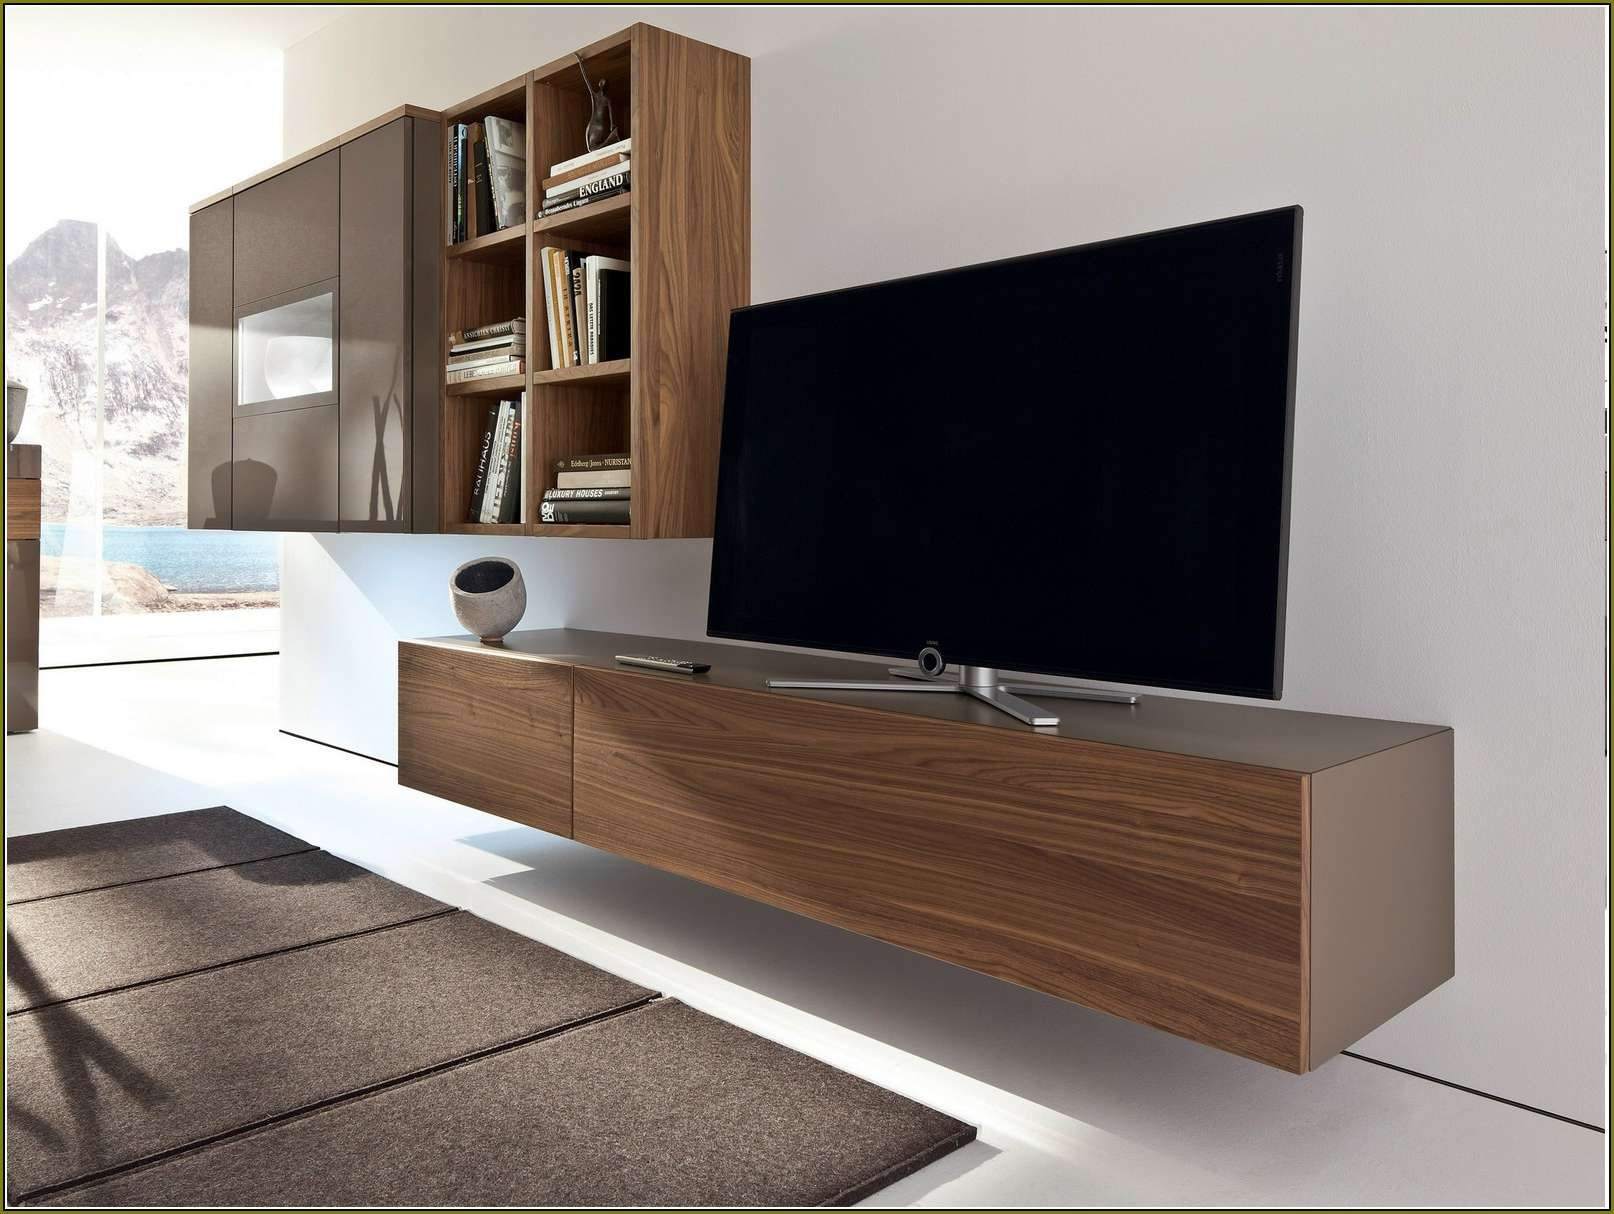 Indian Rosewood Wall Mounted Tv Cabinet With Sliding Door Panel With Regard To Wall Mounted Under Tv Cabinets (View 17 of 20)